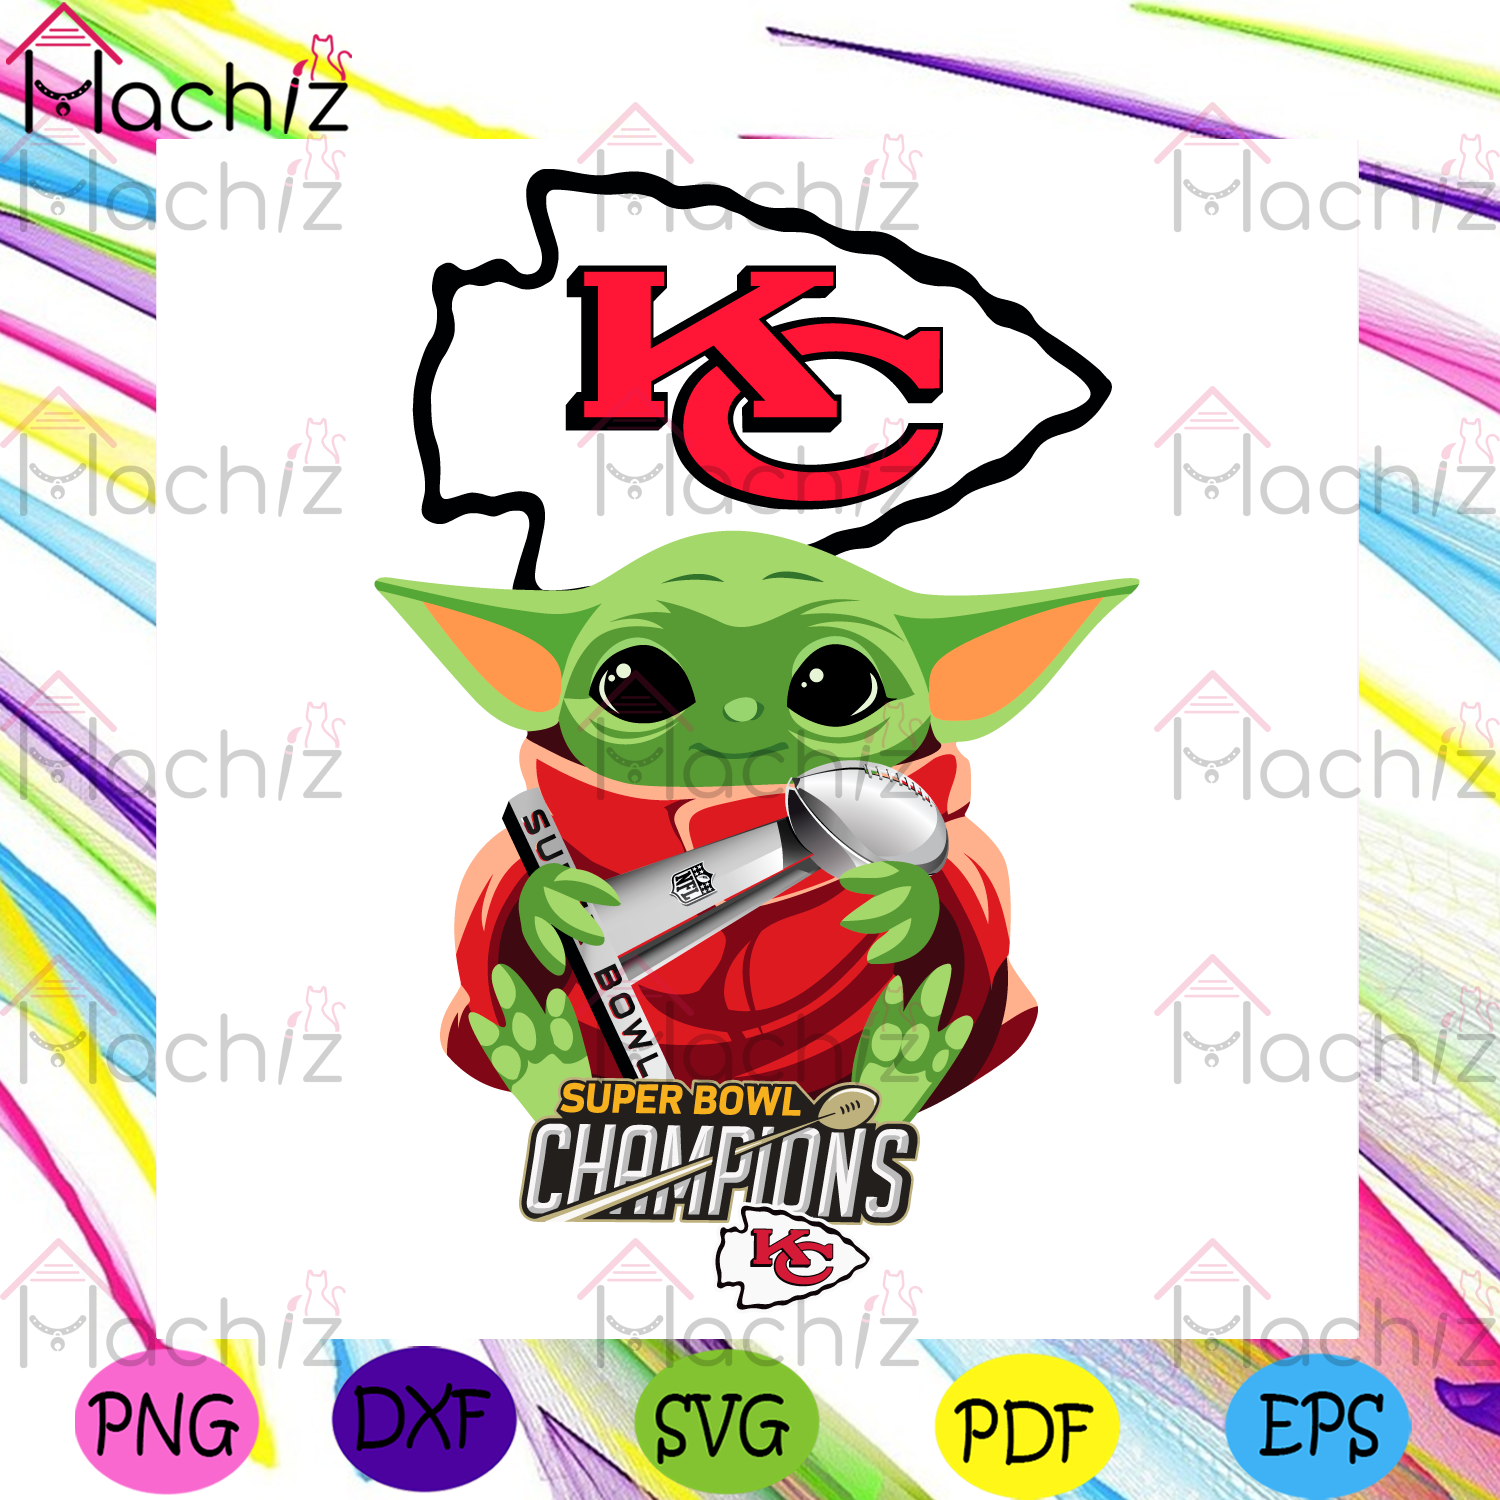 KC Chiefs Yoda Spuper Bowl Champions Svg, Sport Svg, Kansas City Chiefs, Chiefs Svg, KC Svg, KC Chiefs Svg, Chiefs Champs Svg, Chiefs Champions, KC Champions, KC Champs, Super Bowl Champs